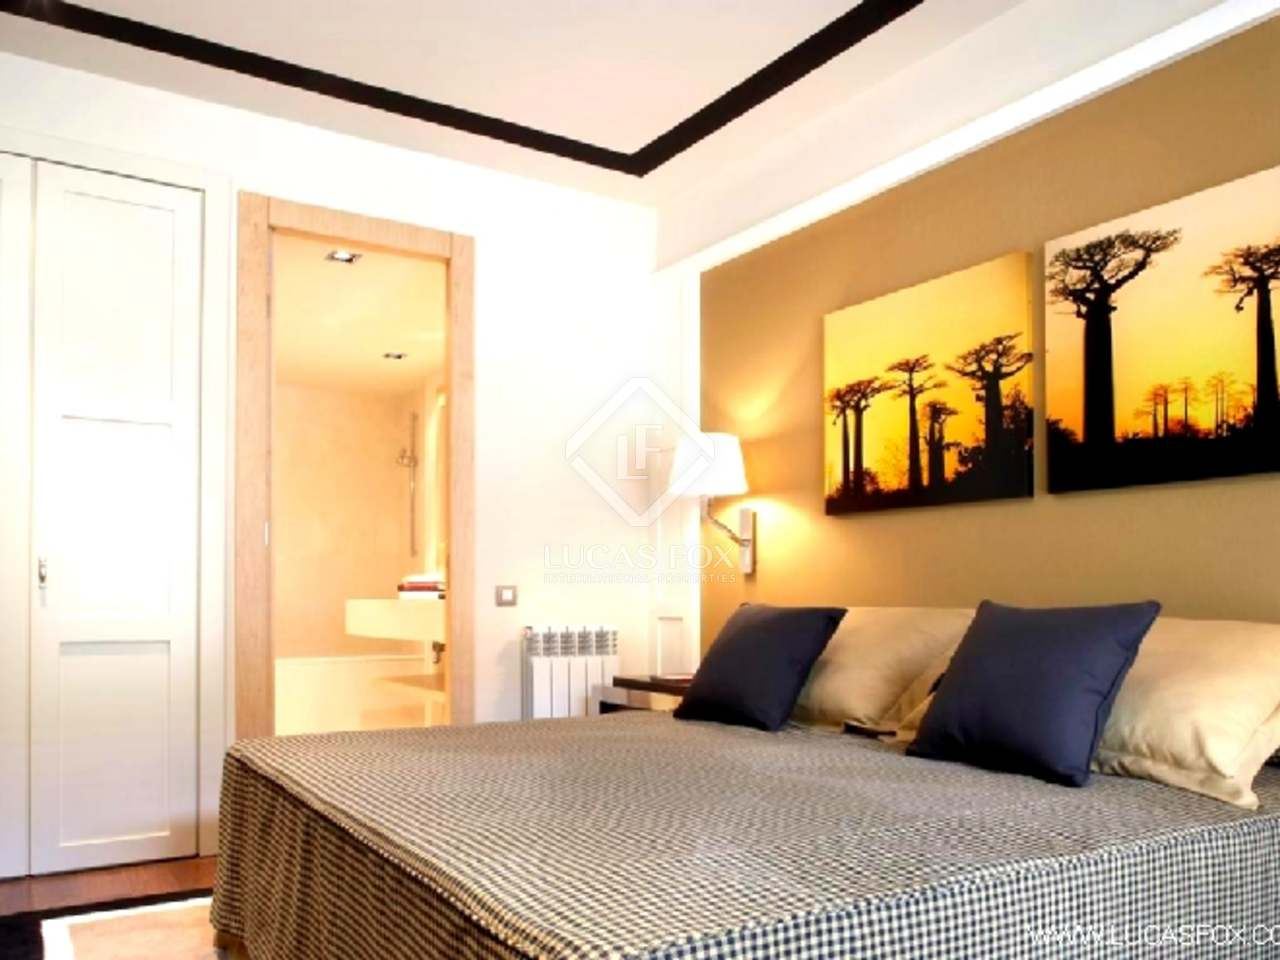 Apartment for rent in pedralbes - Zona alta barcelona ...